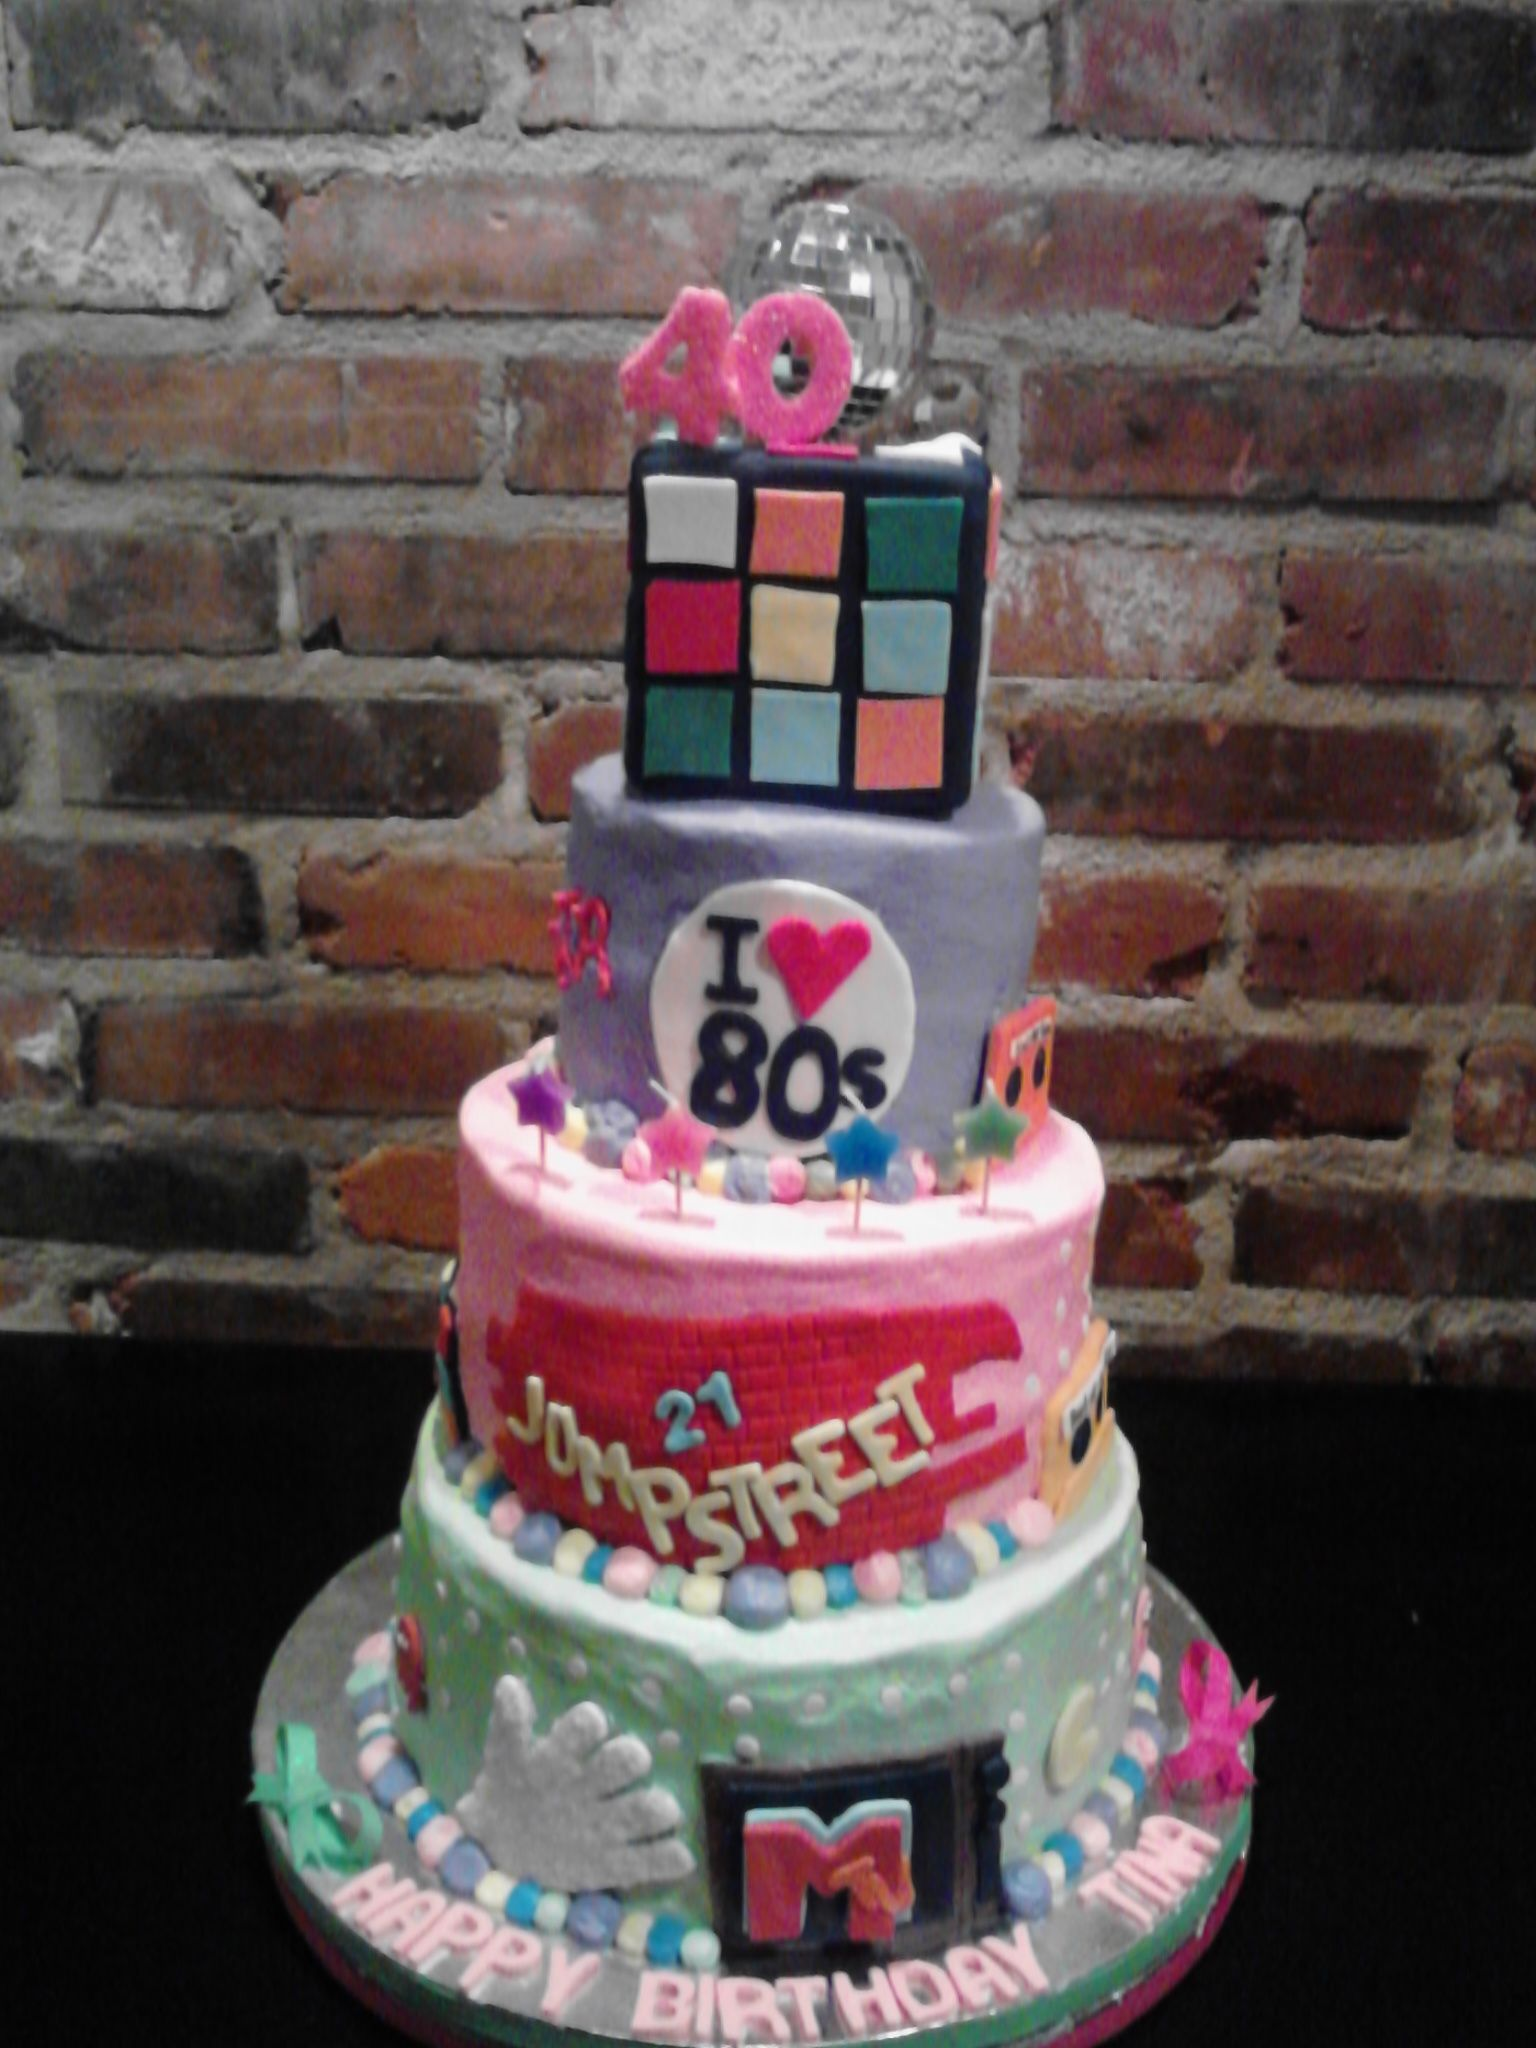 Terrific 80S Theme Birthday Cake With Images Cake Birthday Cake Birthday Funny Birthday Cards Online Barepcheapnameinfo